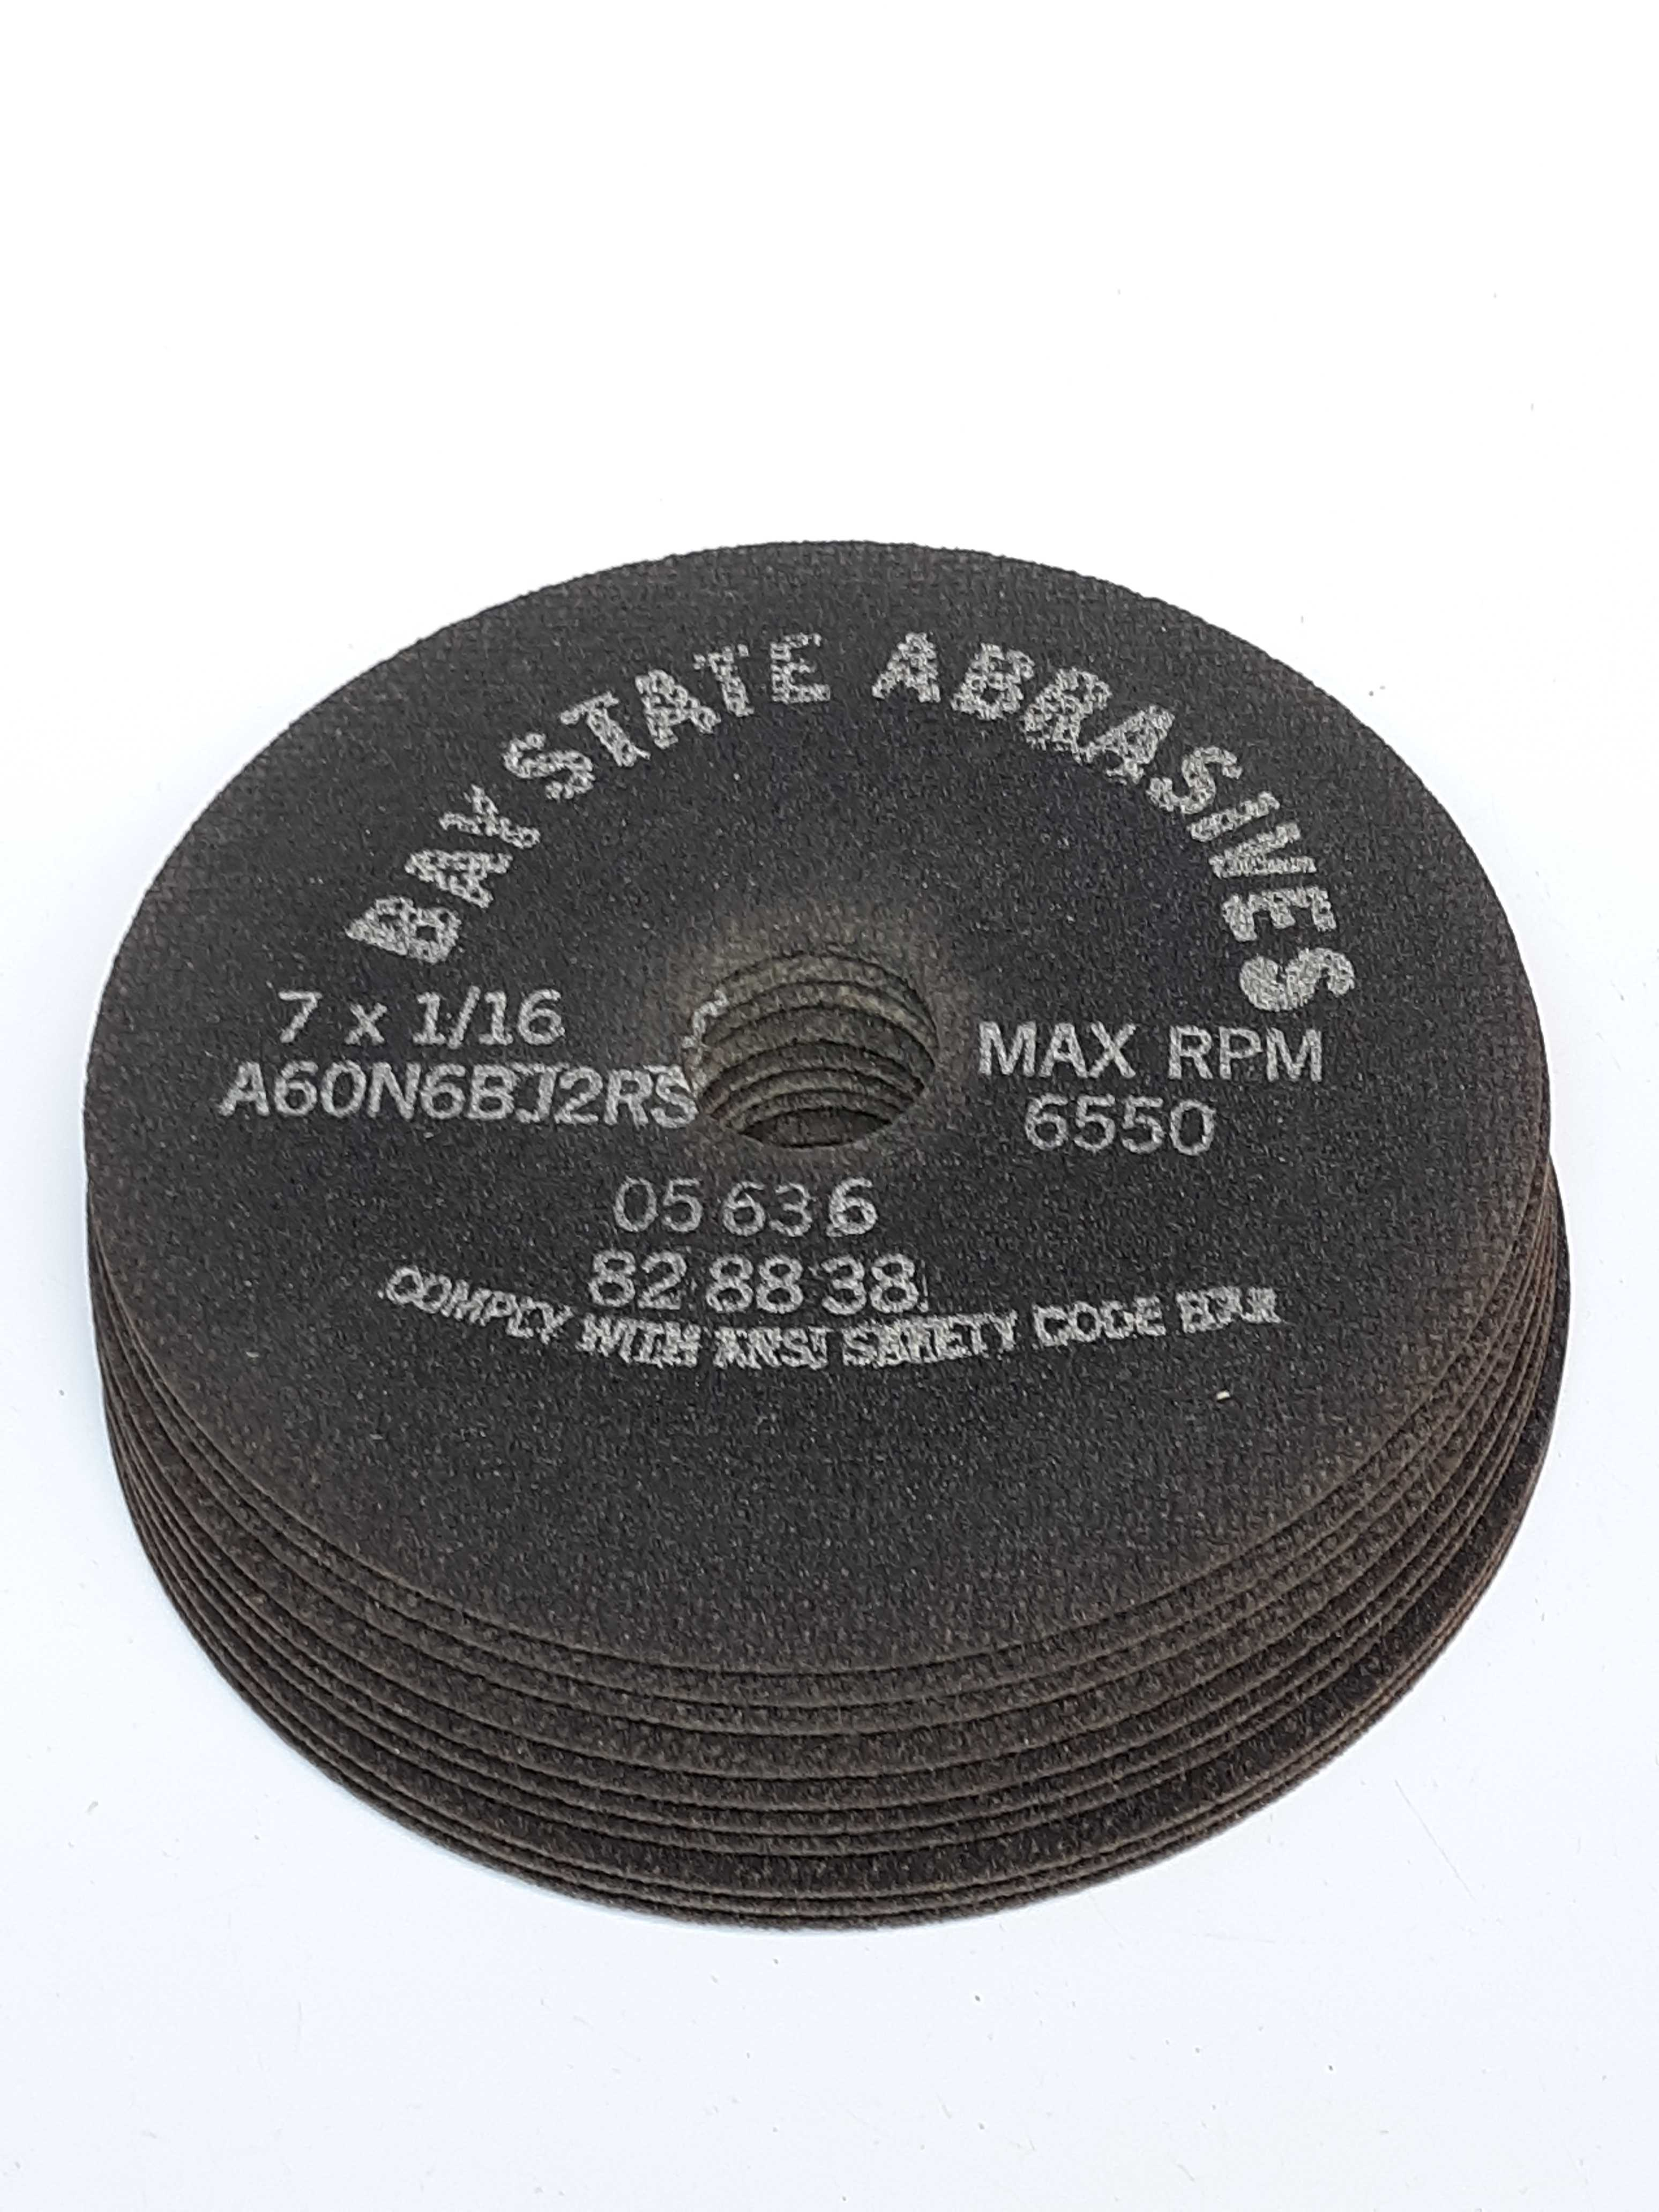 Bay State Abrasives A60N6BJ2RS Grinding Disc 7X1/16 Max RPM 6550 Lot of 10